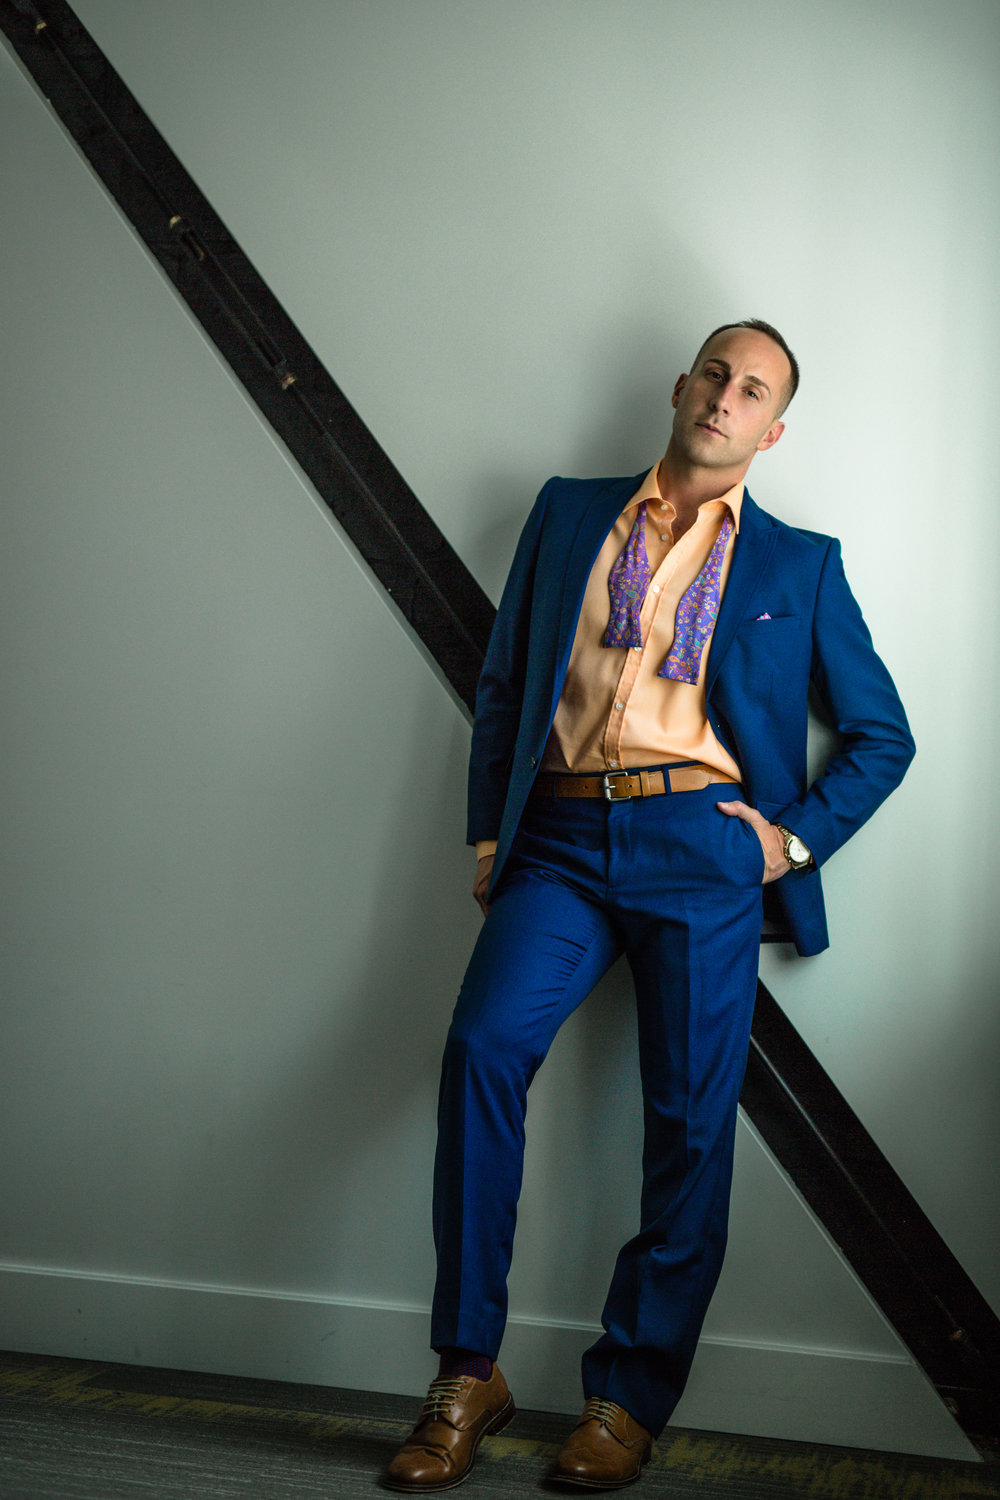 This is our storytelling hint of sexy — without him needing to be in a state of undress to tell that story. Note the bow tie…and a bit of confident swagger in his pose.  (c) 2018 Cate Scaglione | LifeasFineArt.com